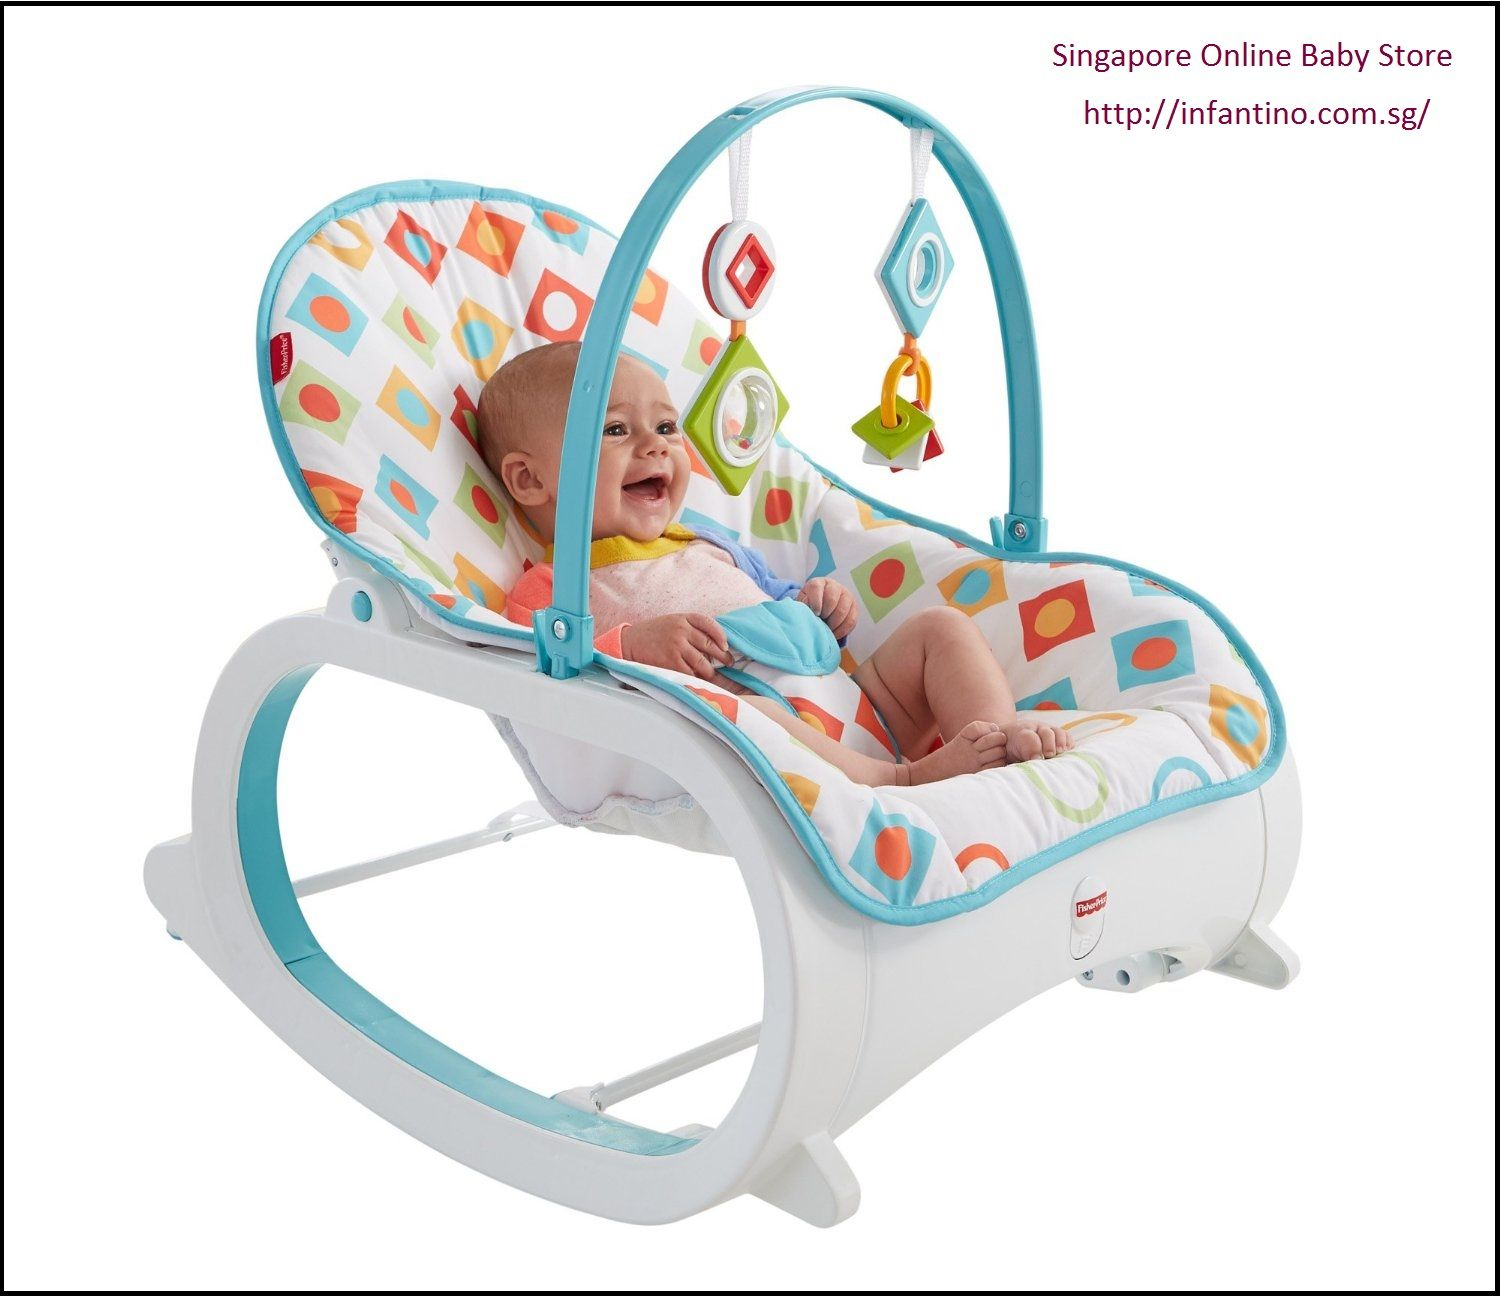 Infantino is one of the best online baby products store in